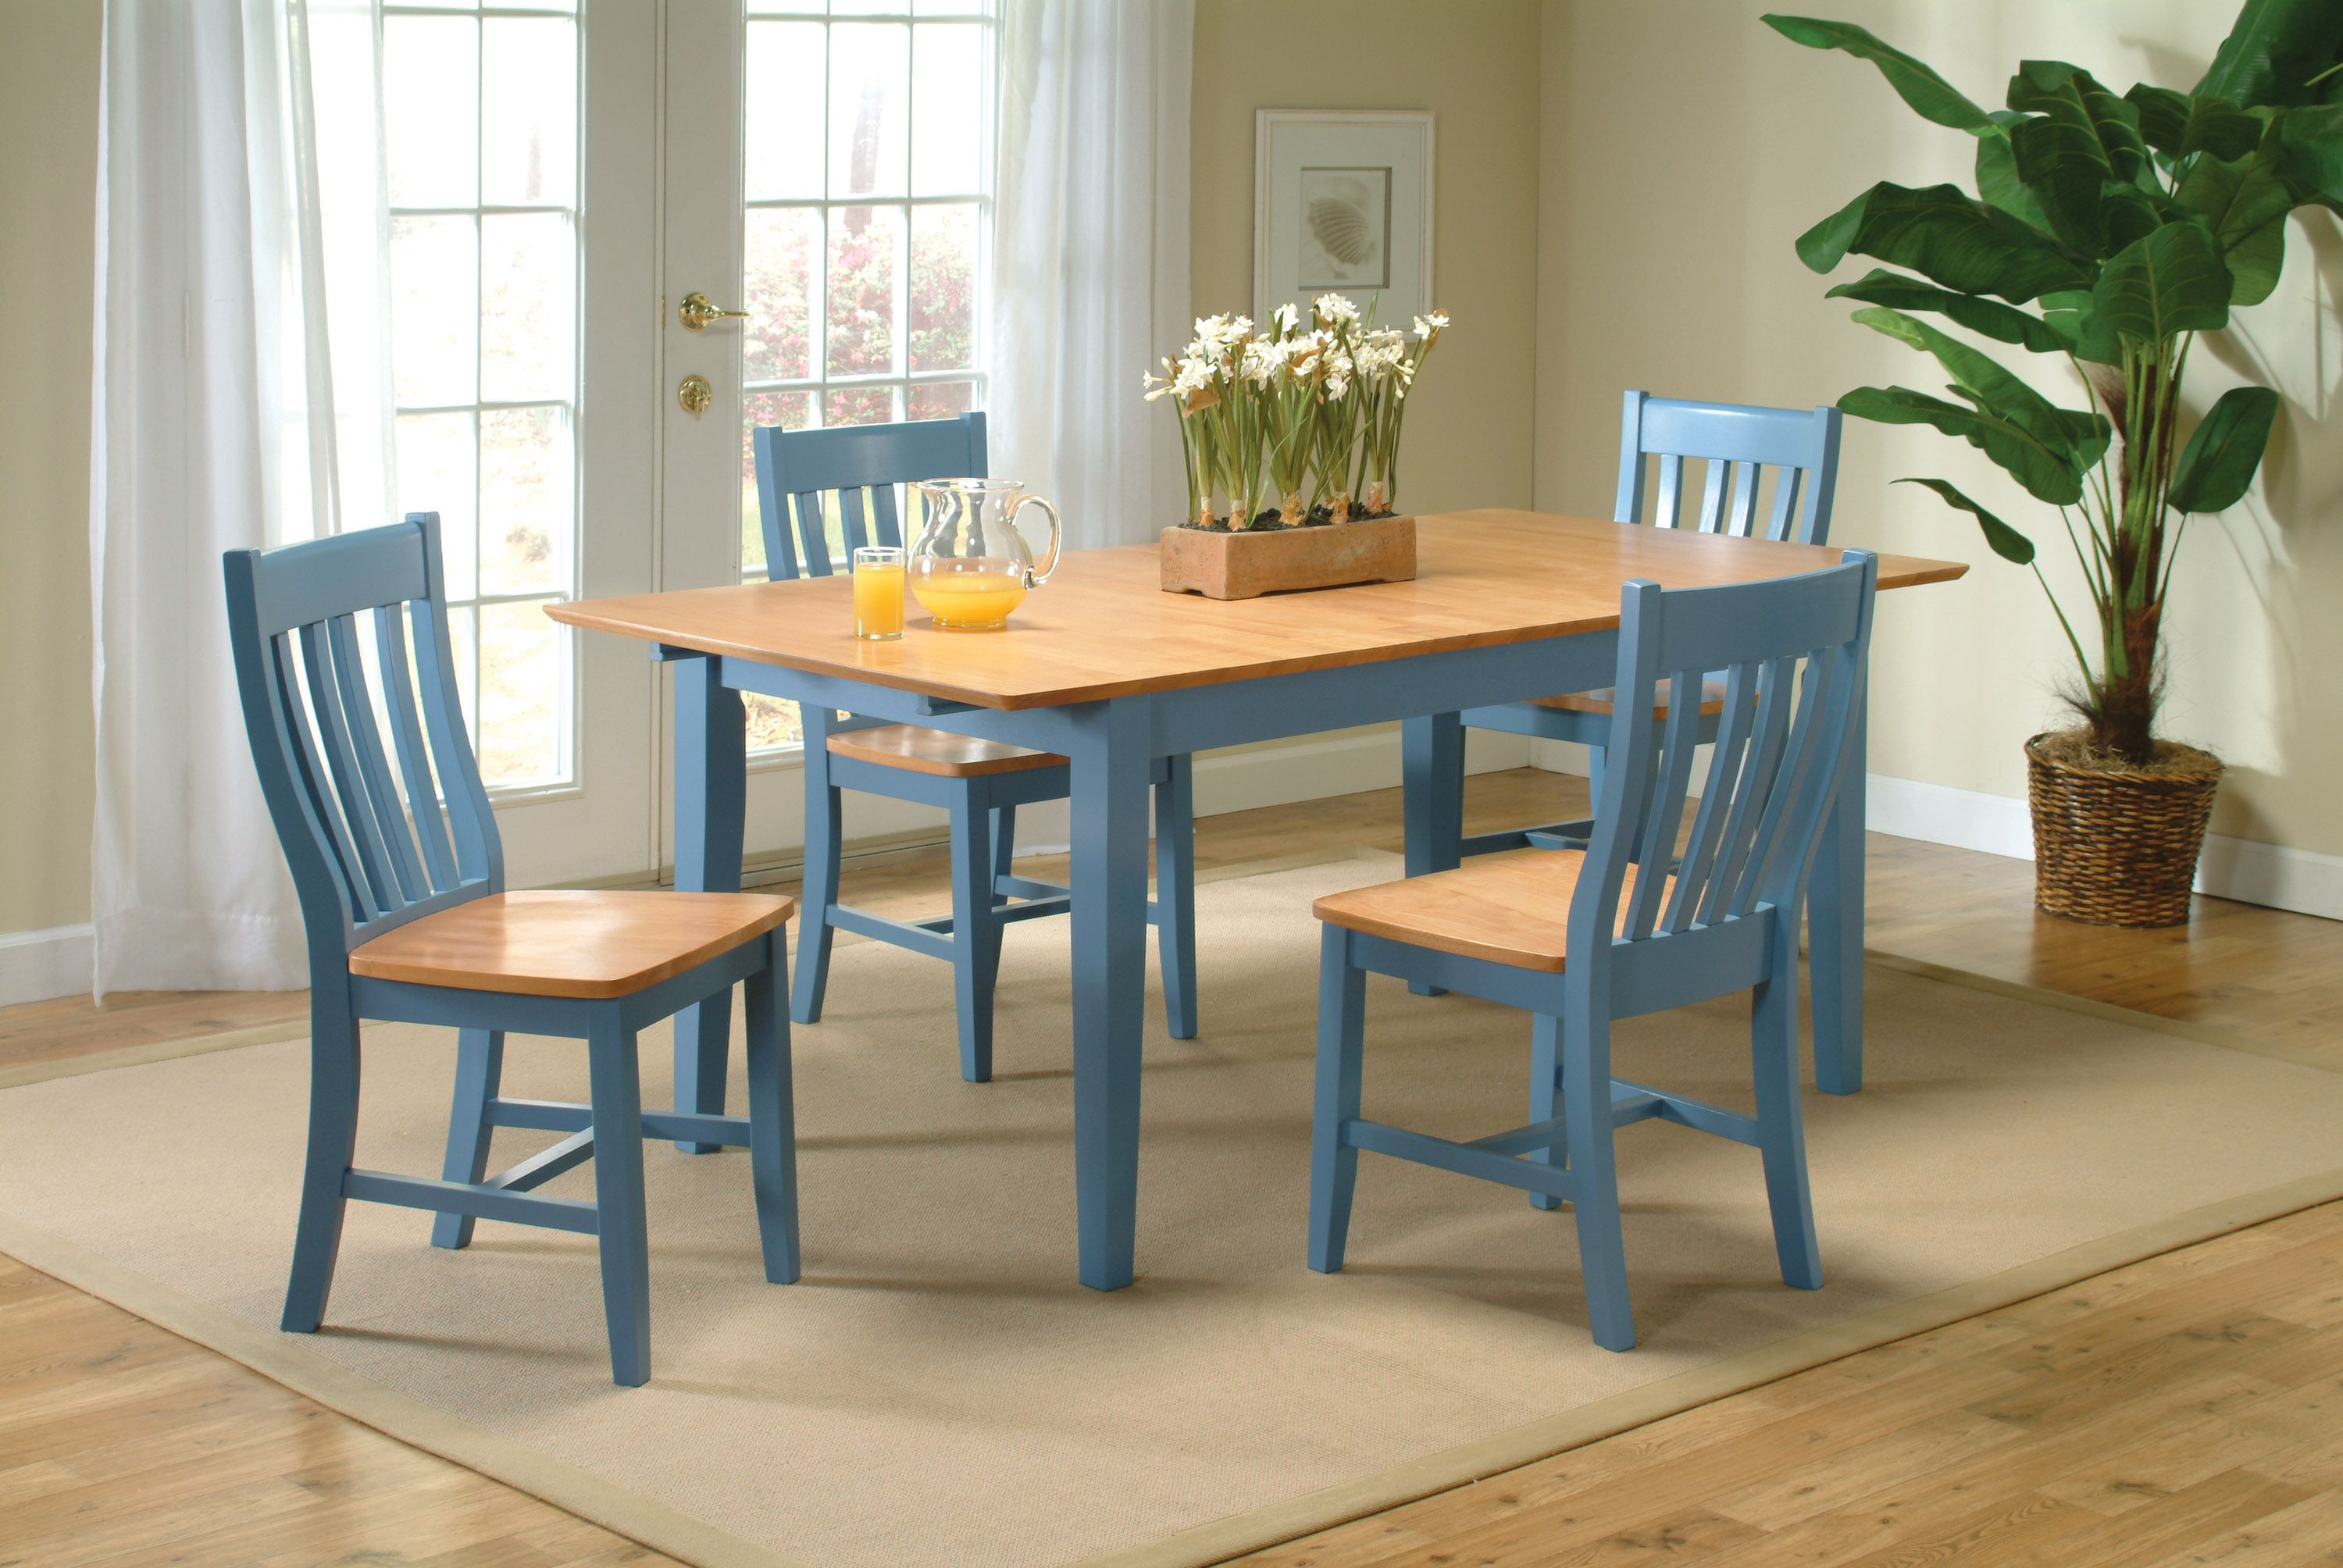 Periwinkle Blue and Maple Dining Set   Dining table, Painted ...